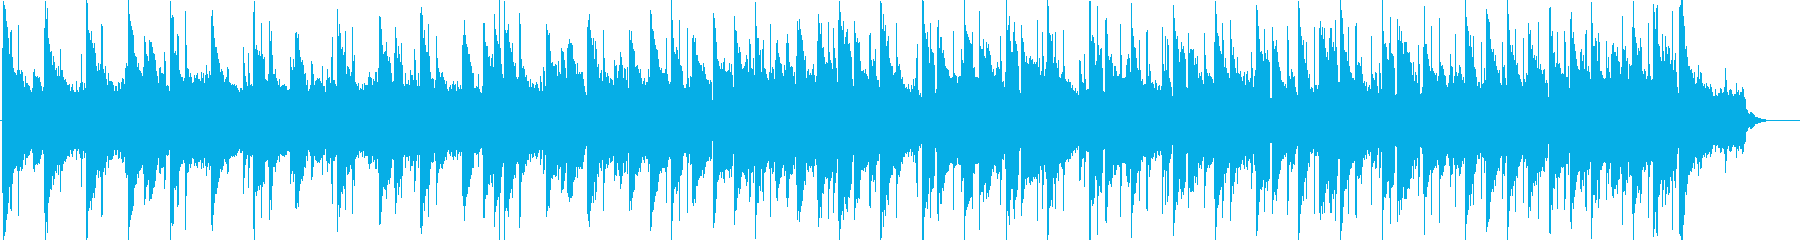 Calm and dramatic BGM's reproduced waveform